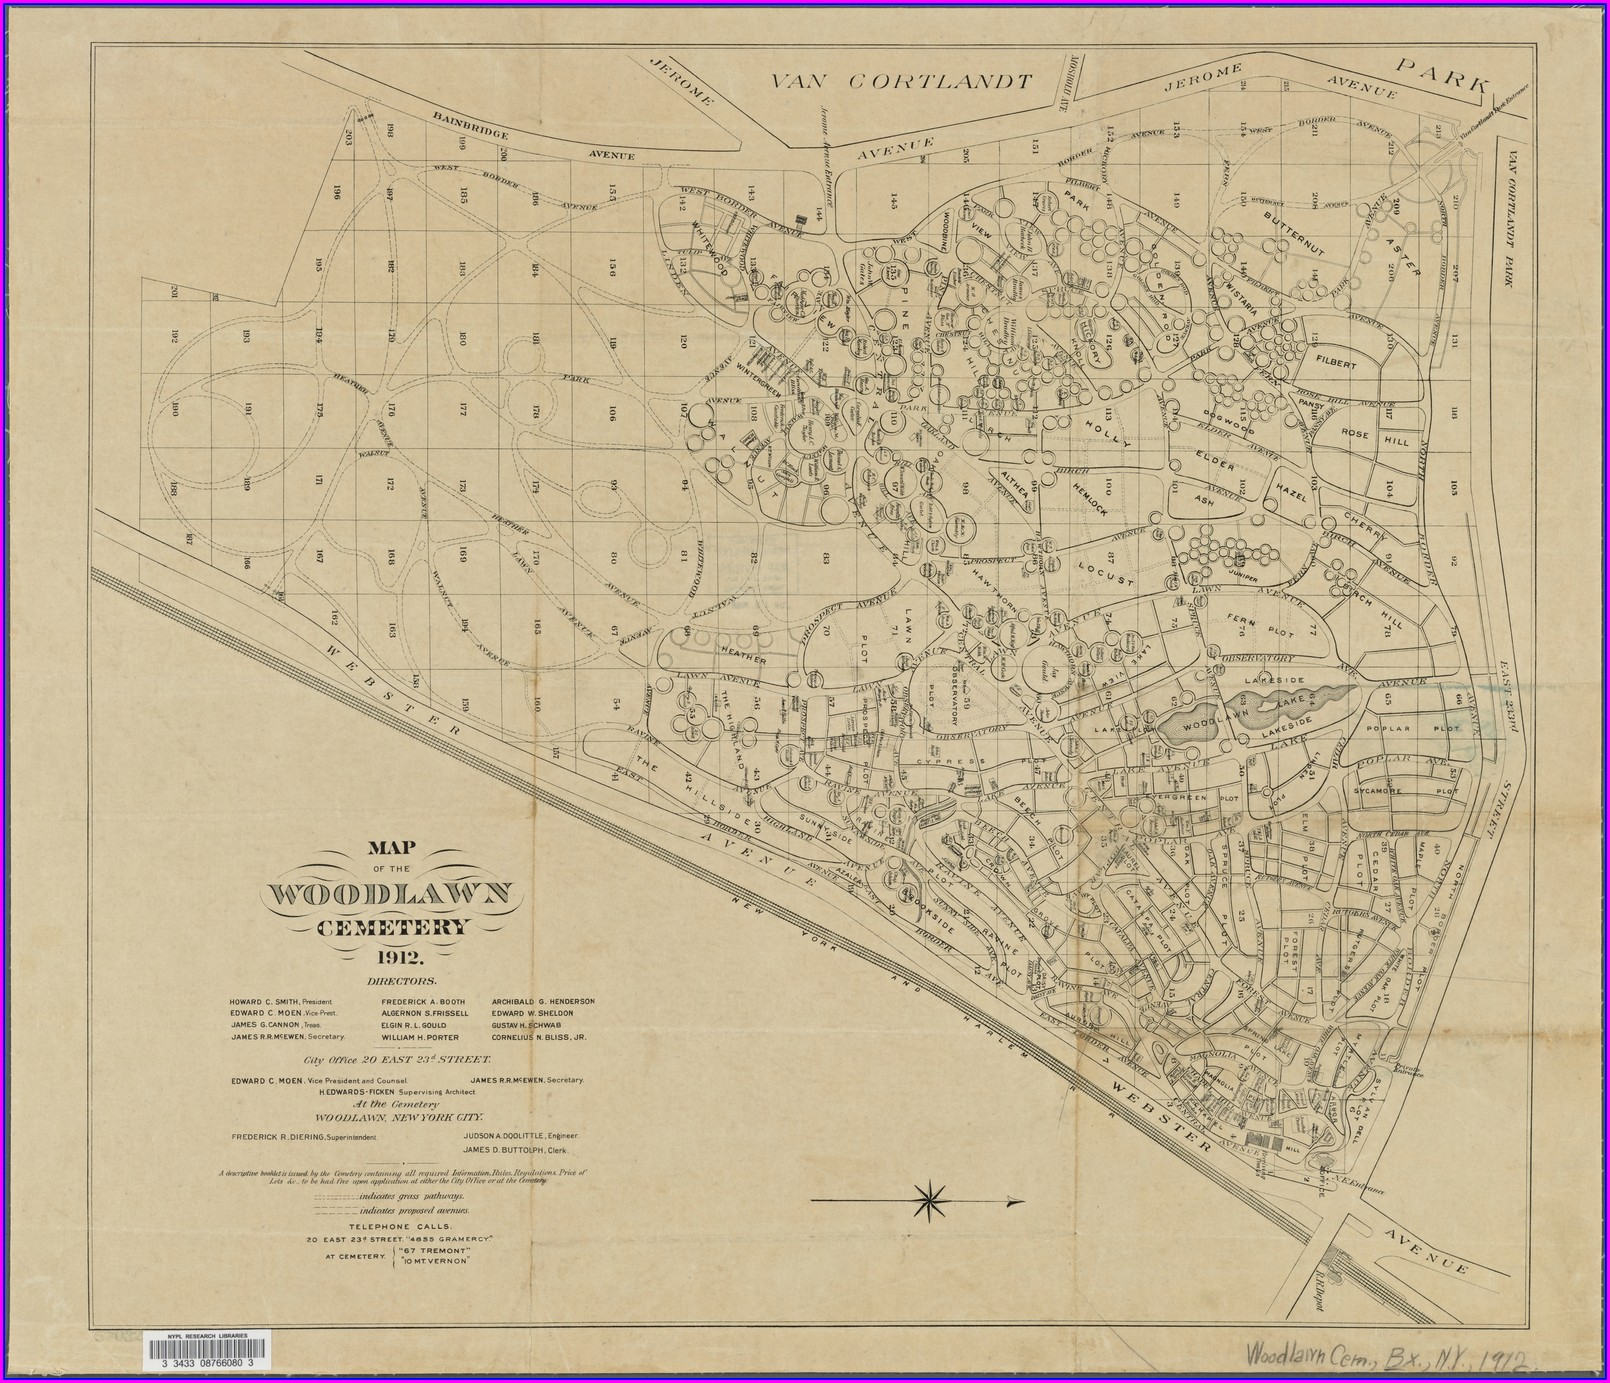 Map Of Woodlawn Cemetery Bronx Ny